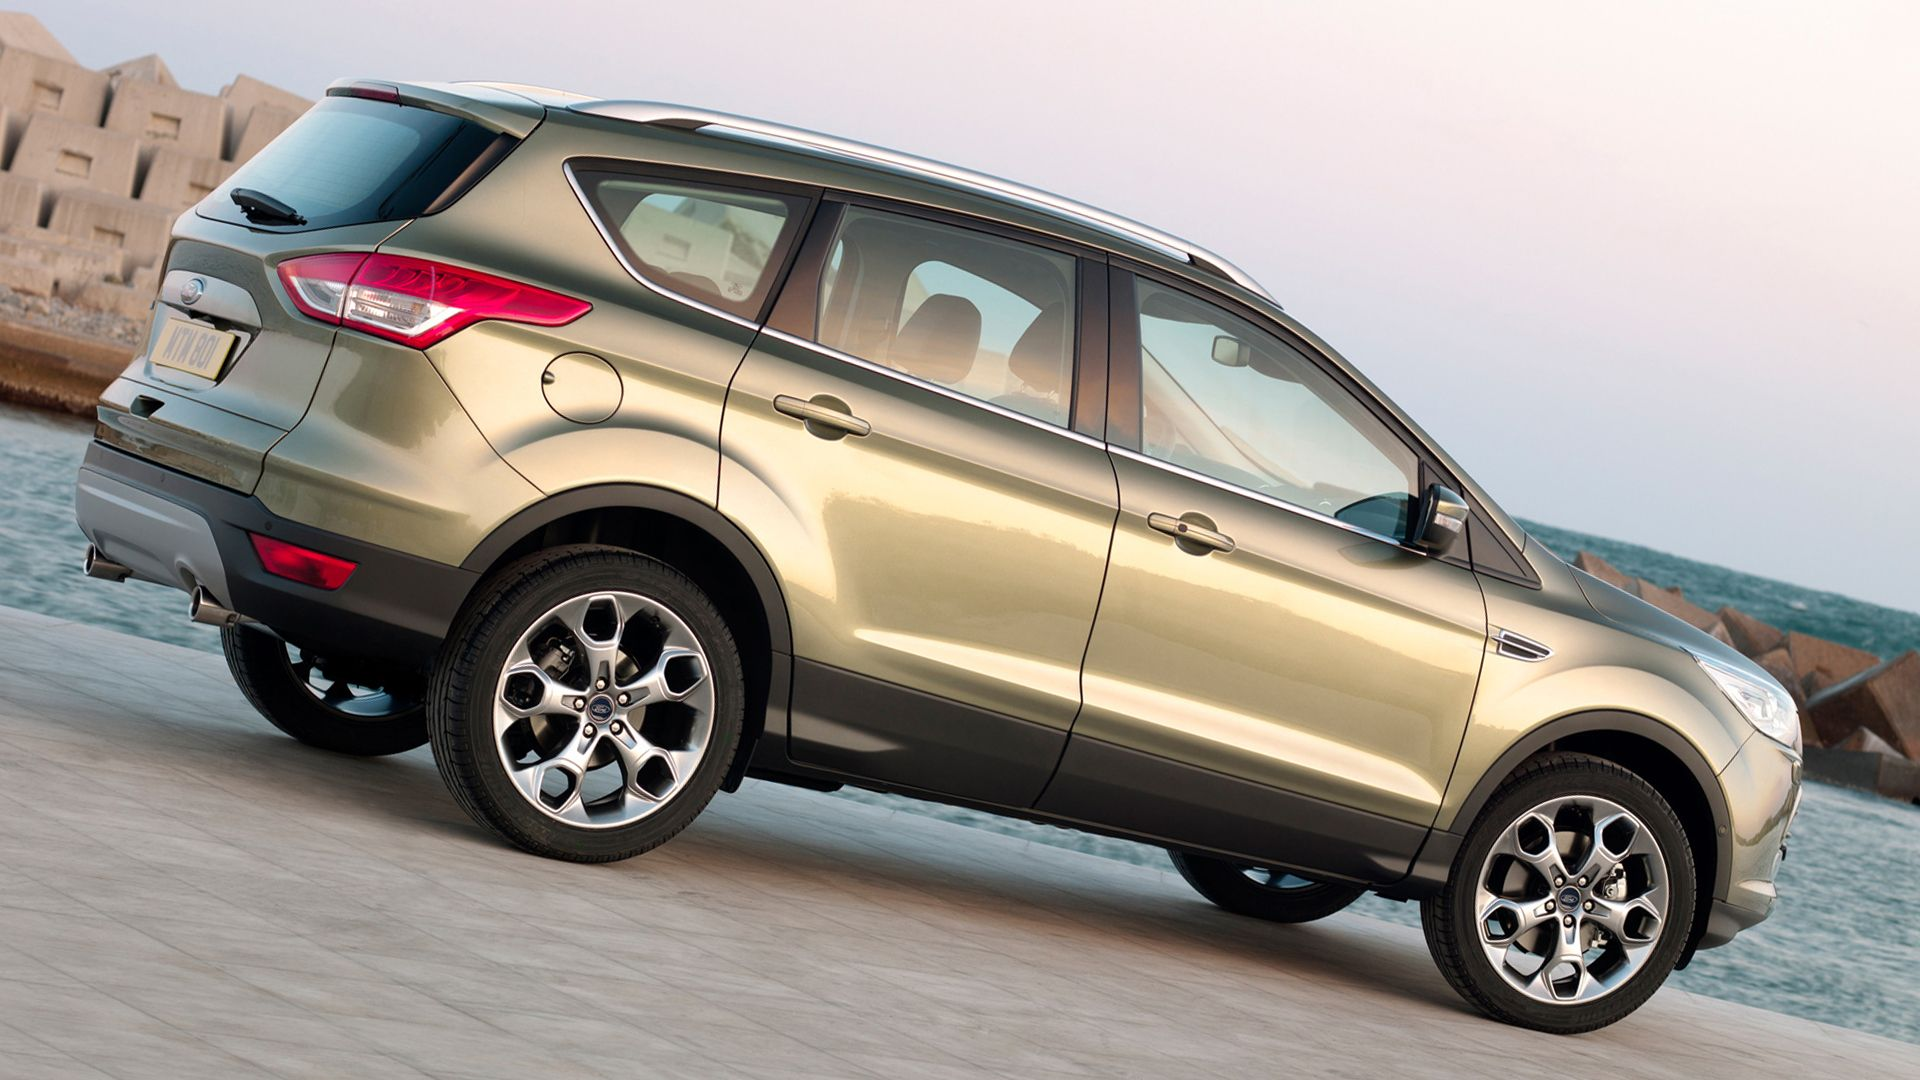 Ford Kuga 2020 Usa Price List Hd Ford Gt Ford Gt Price Ford Kuga